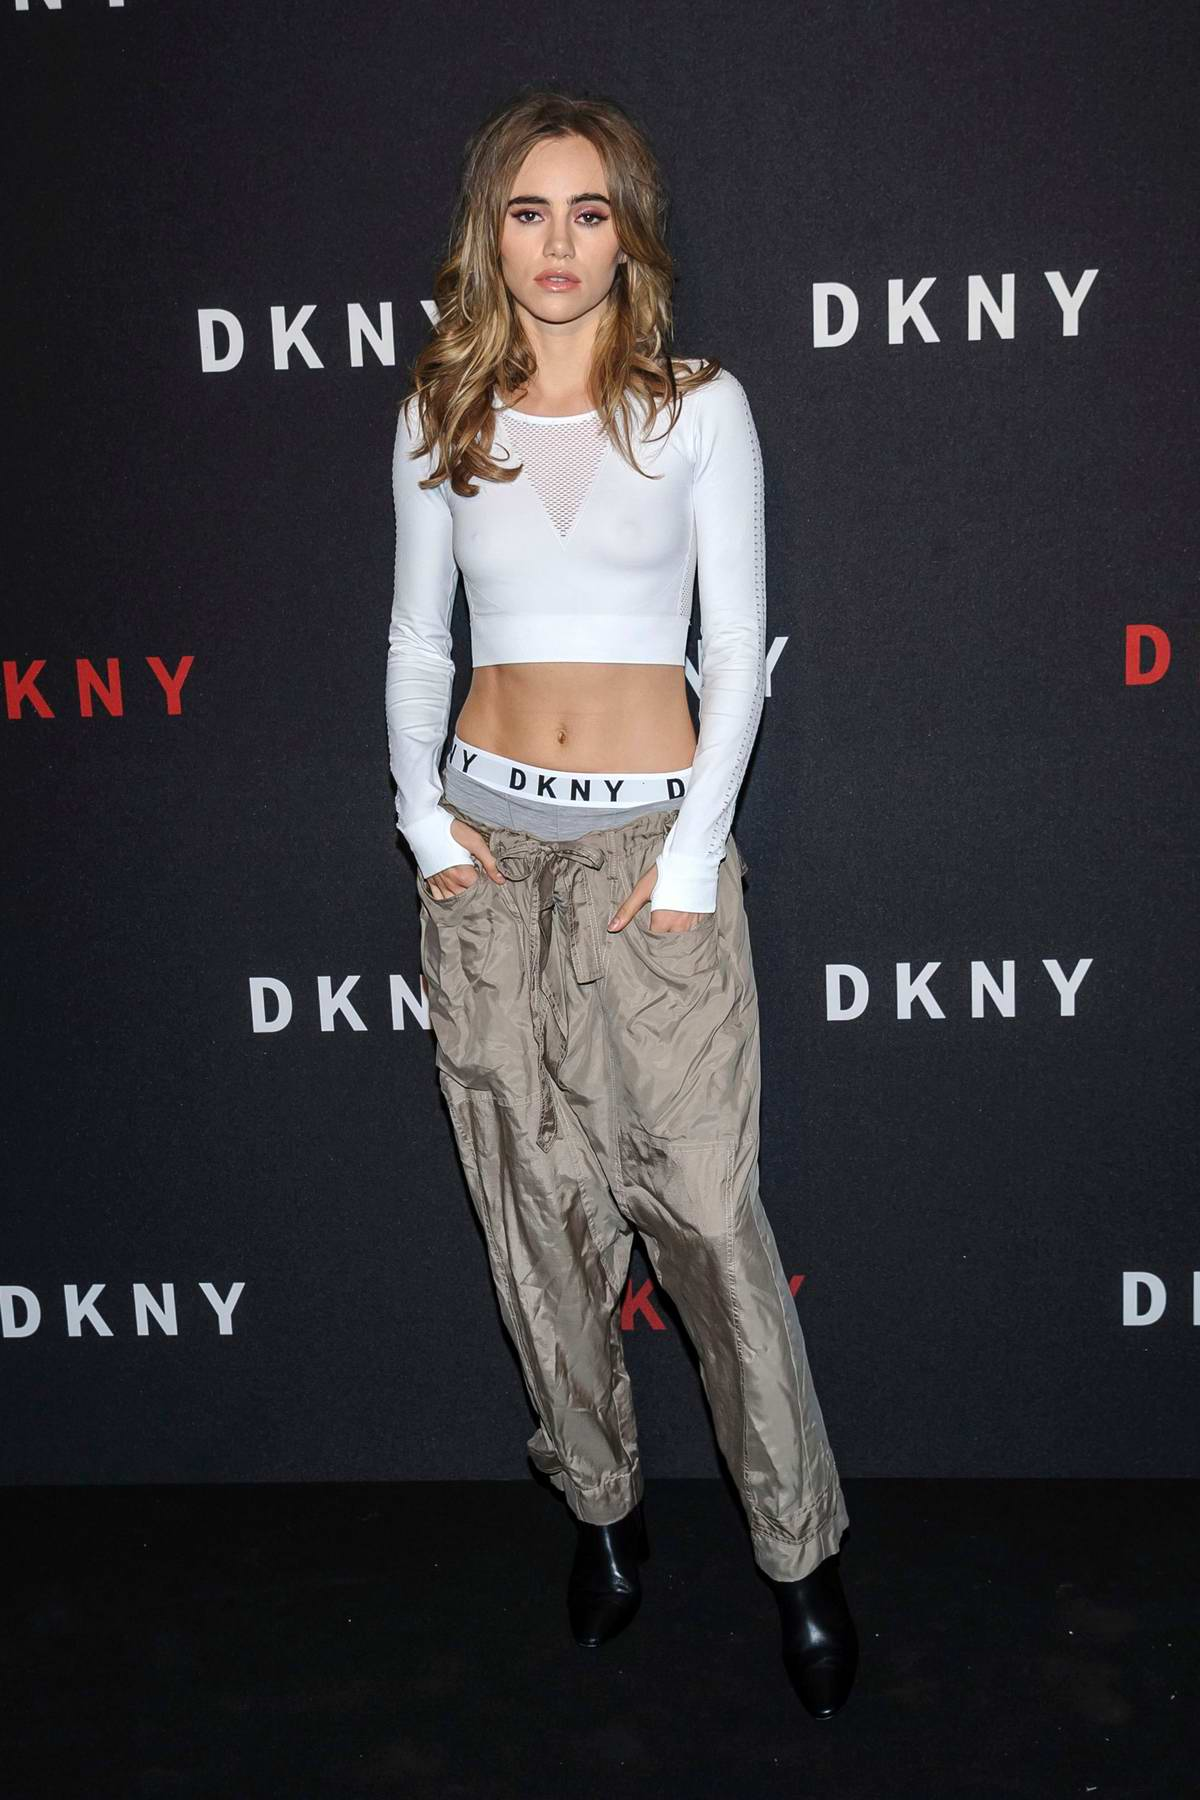 Suki Waterhouse attends DKNY 30th birthday party during New York Fashion Week in New York City